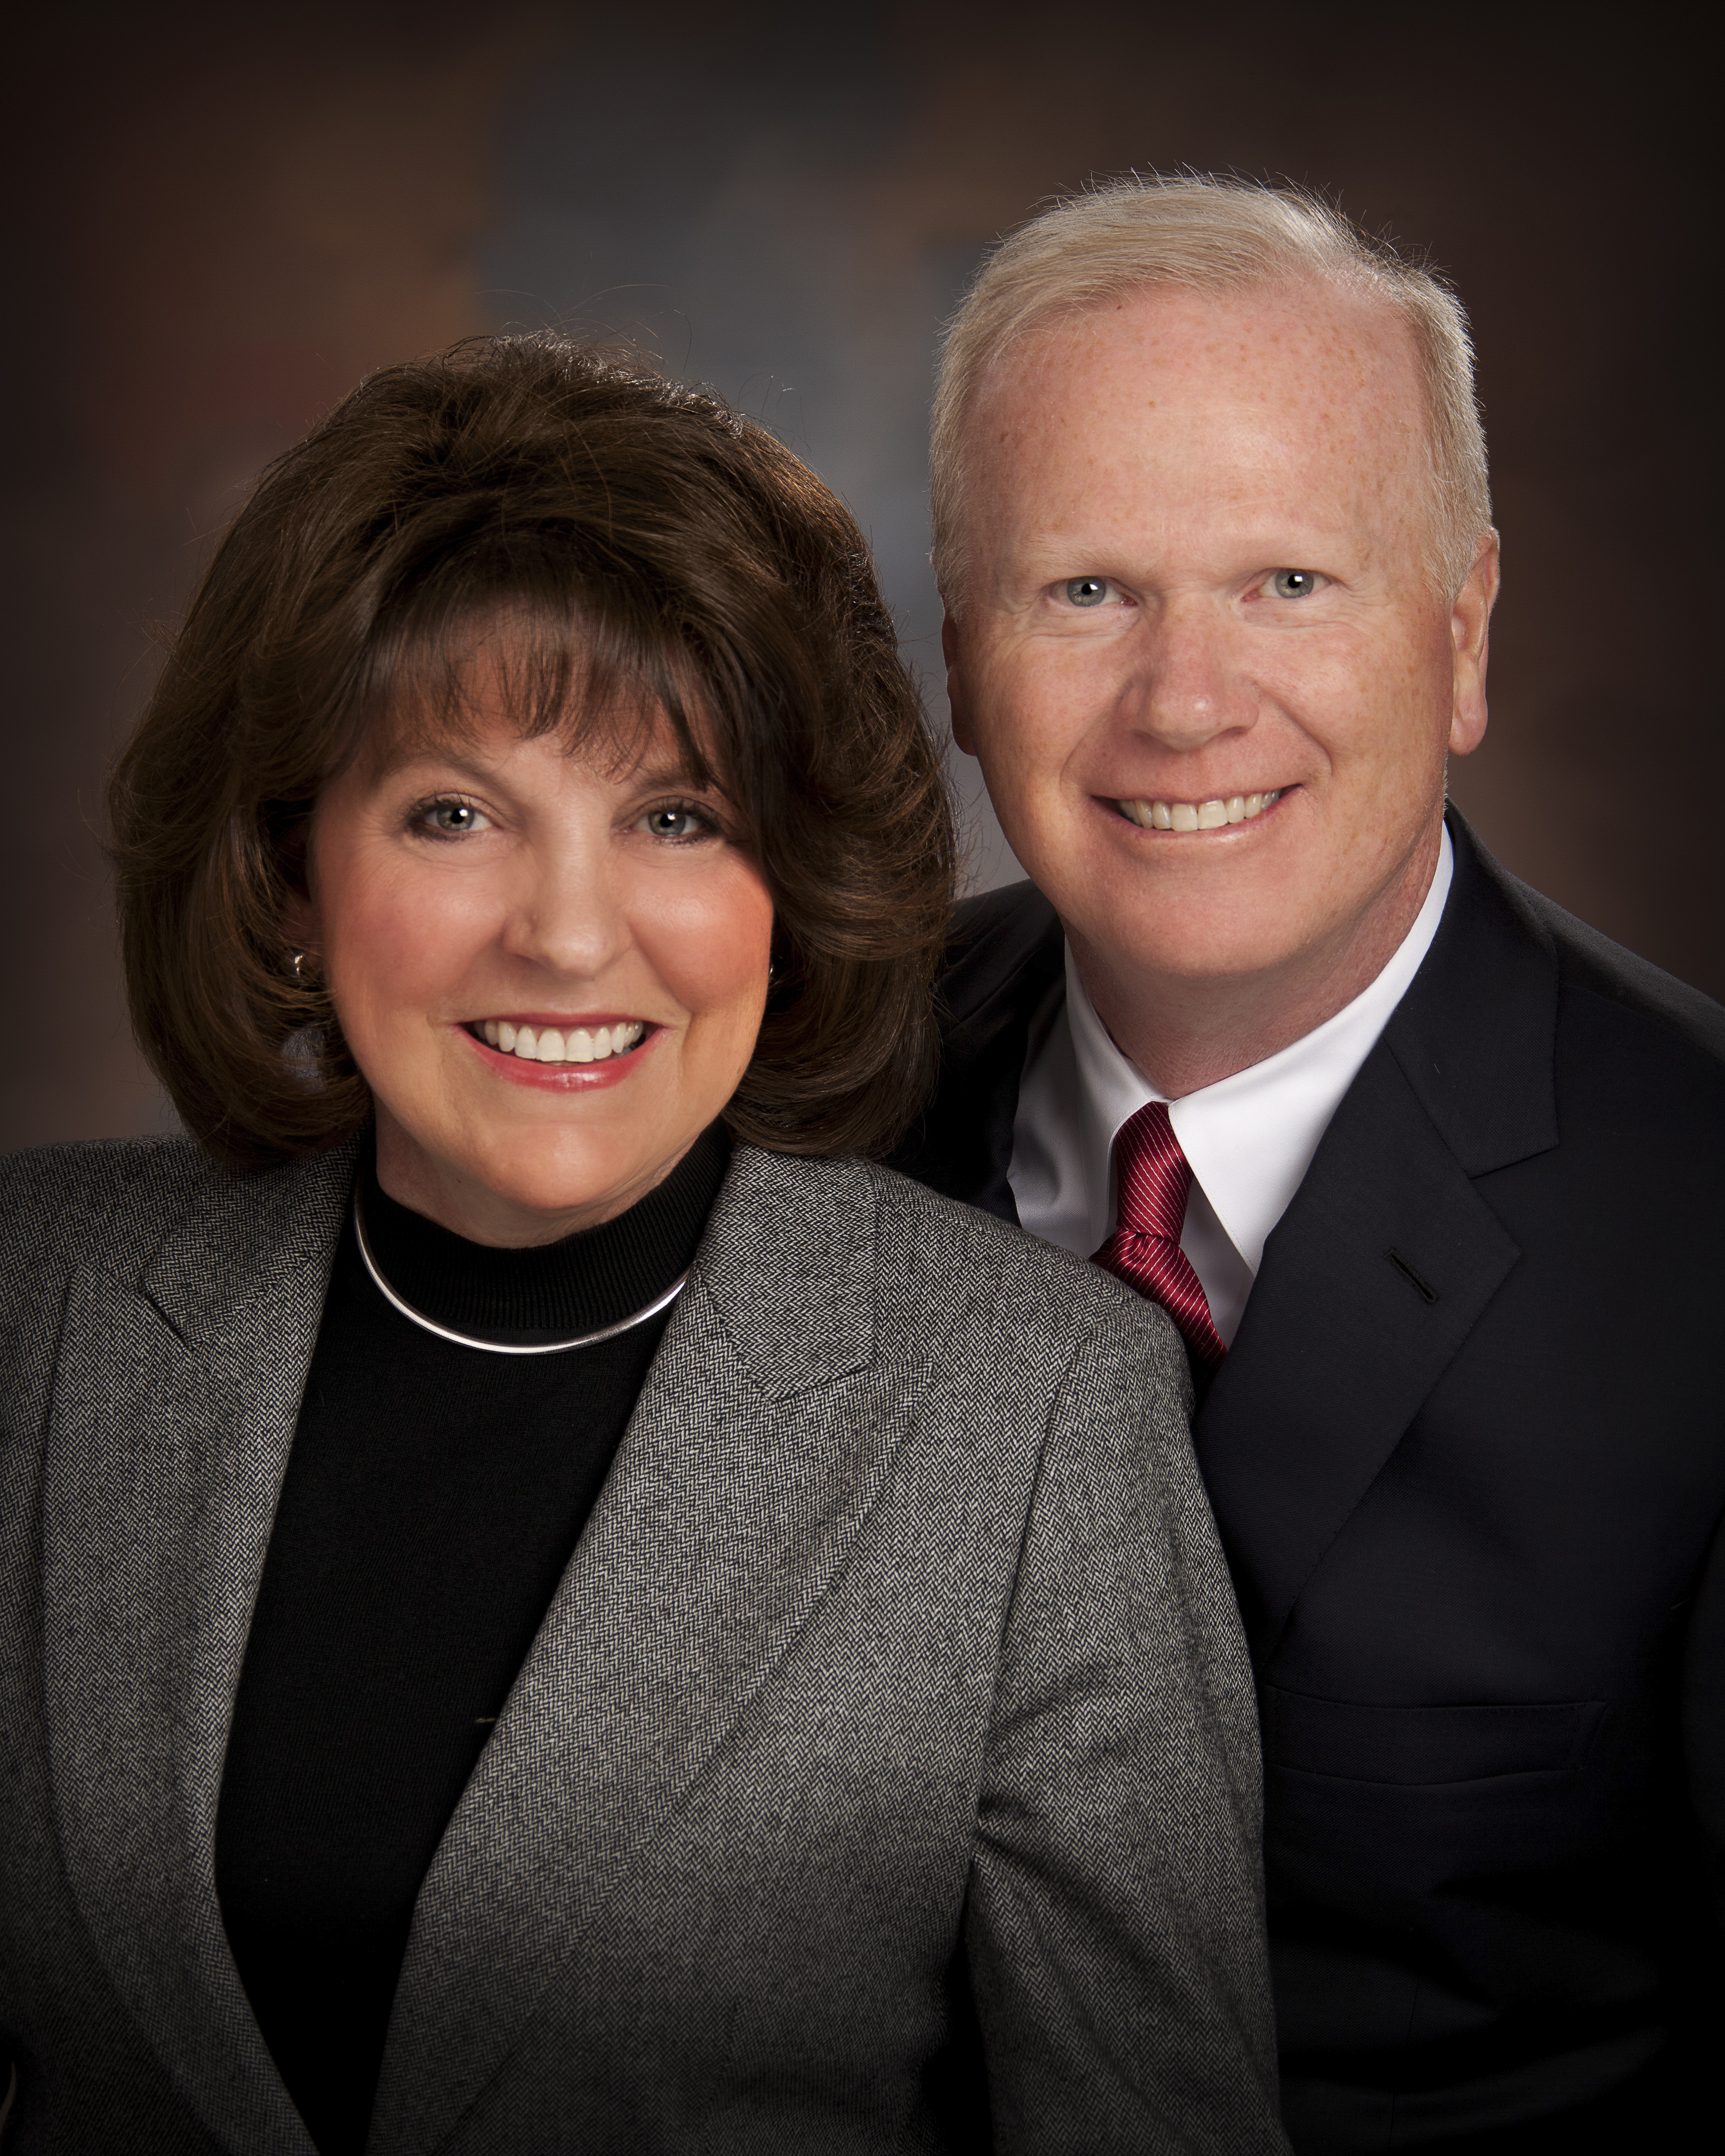 Sister Vicki G. Jackman and her husband, Brother Brad Jackman. Sister Jackman is a member of the Young Women general board.